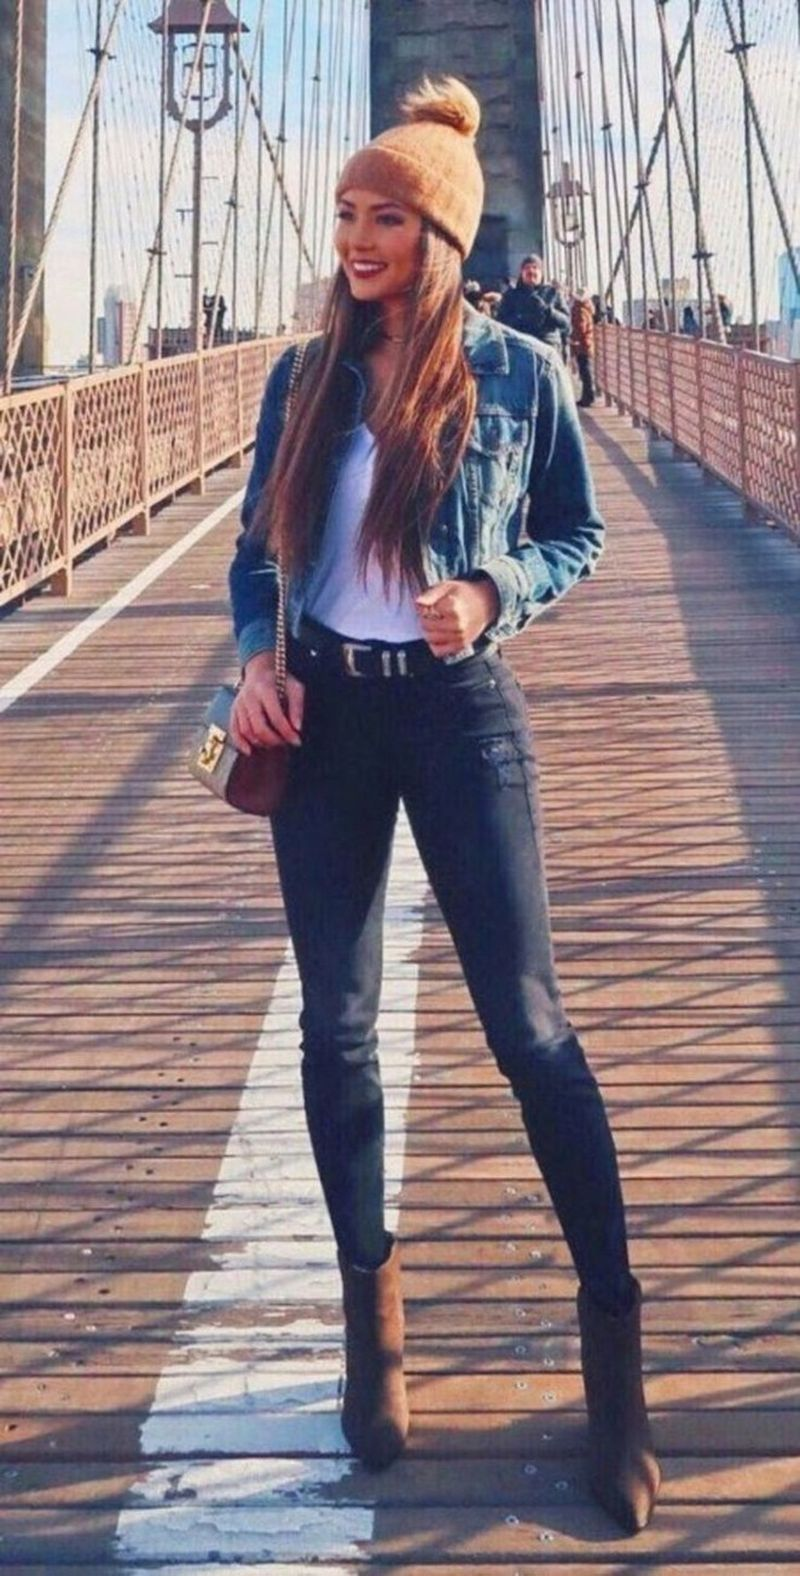 40 Trendiest Winter Outfits For Girls Jean Jacket Outfits Denim Outfit Winter Outfits [ 1576 x 800 Pixel ]